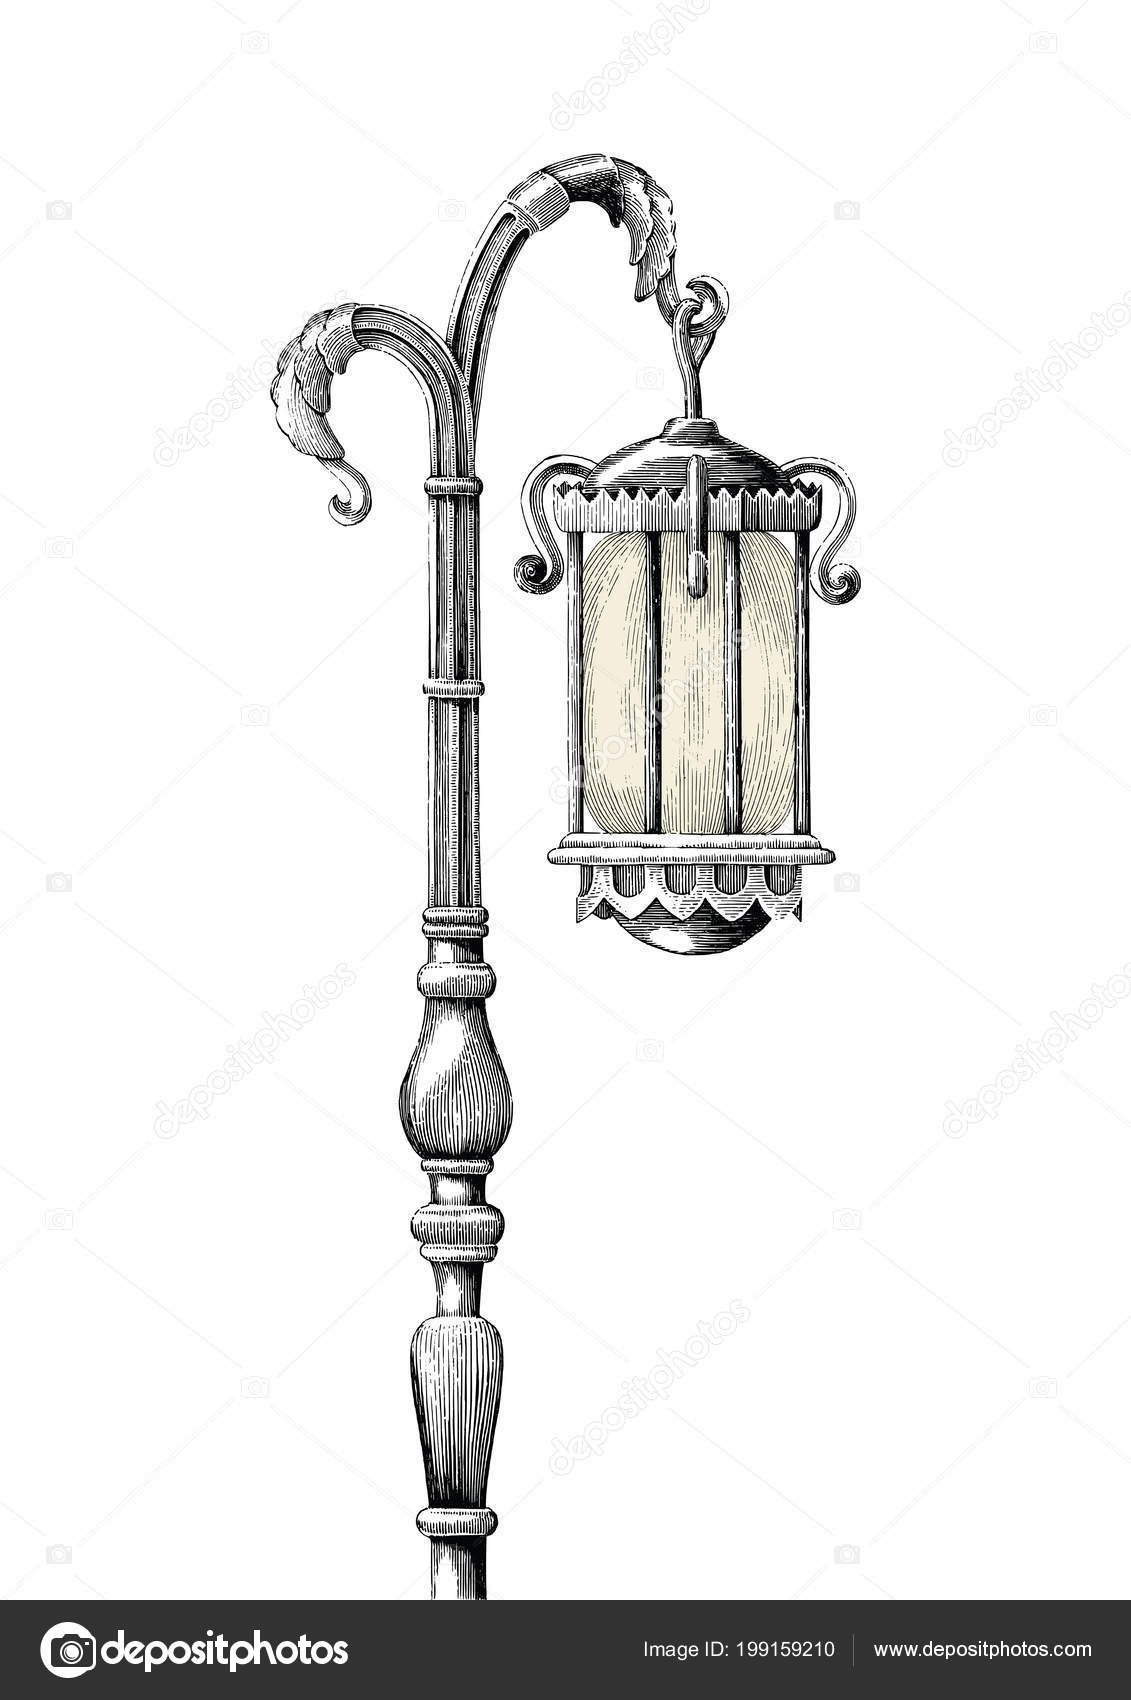 Old Lamp Post Drawing Vintage Lamp Post Hand Drawing Engraving Illustration White Background Stock Photo Ohm3417 Hotmail Com 199159210